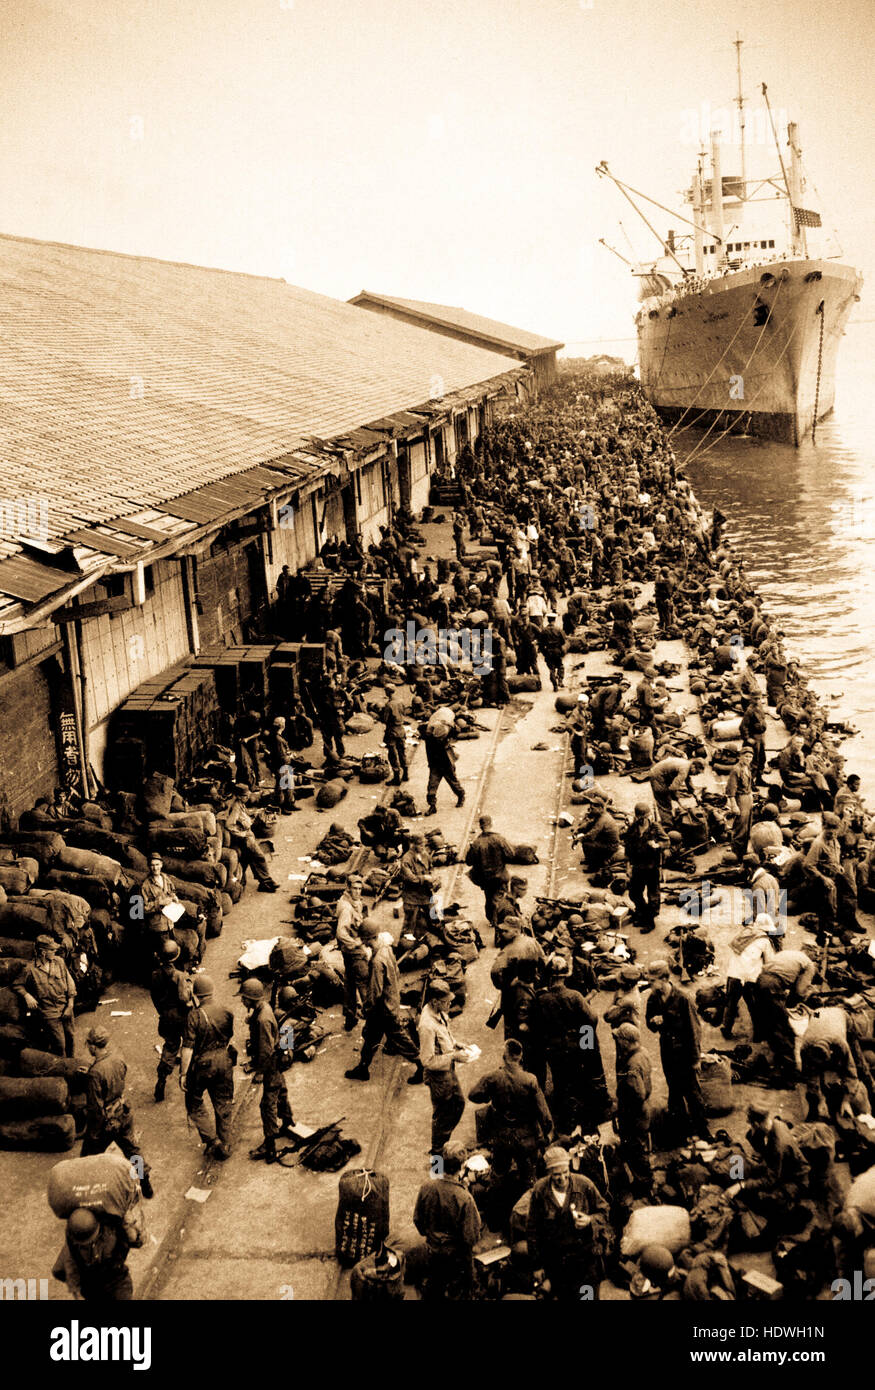 U.S. troops are pictured on pier after debarking from ship, somewhere in Korea. Stock Photo